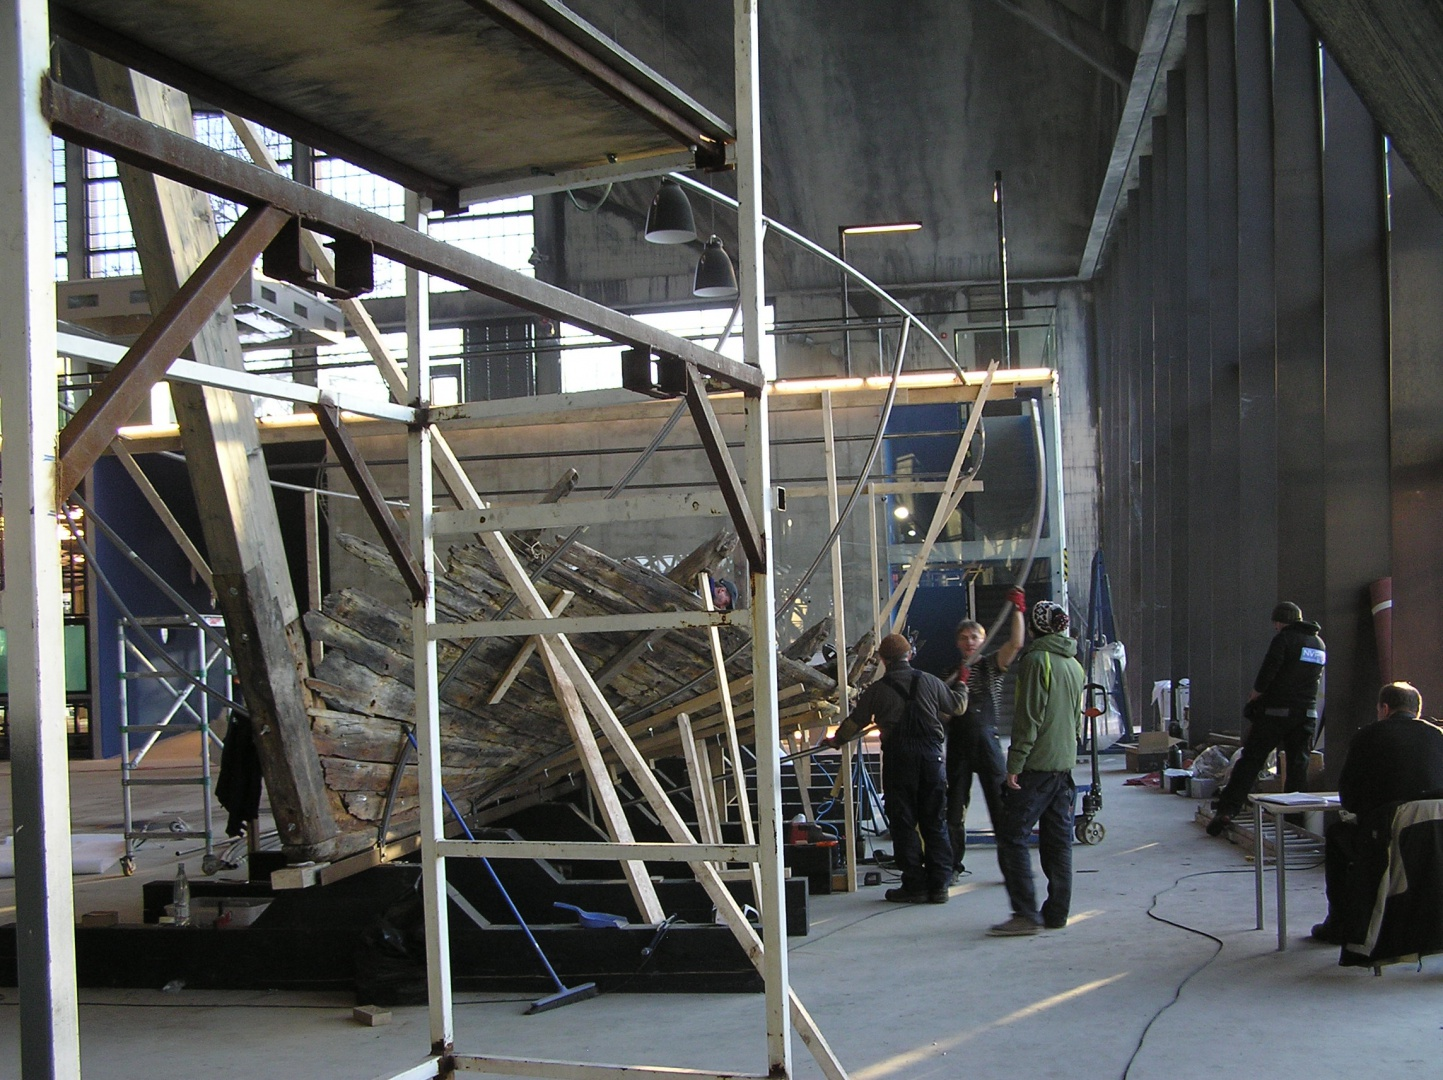 ill 3.Placing the wreck on the exposition stand. Seaplane harbour, 2011.